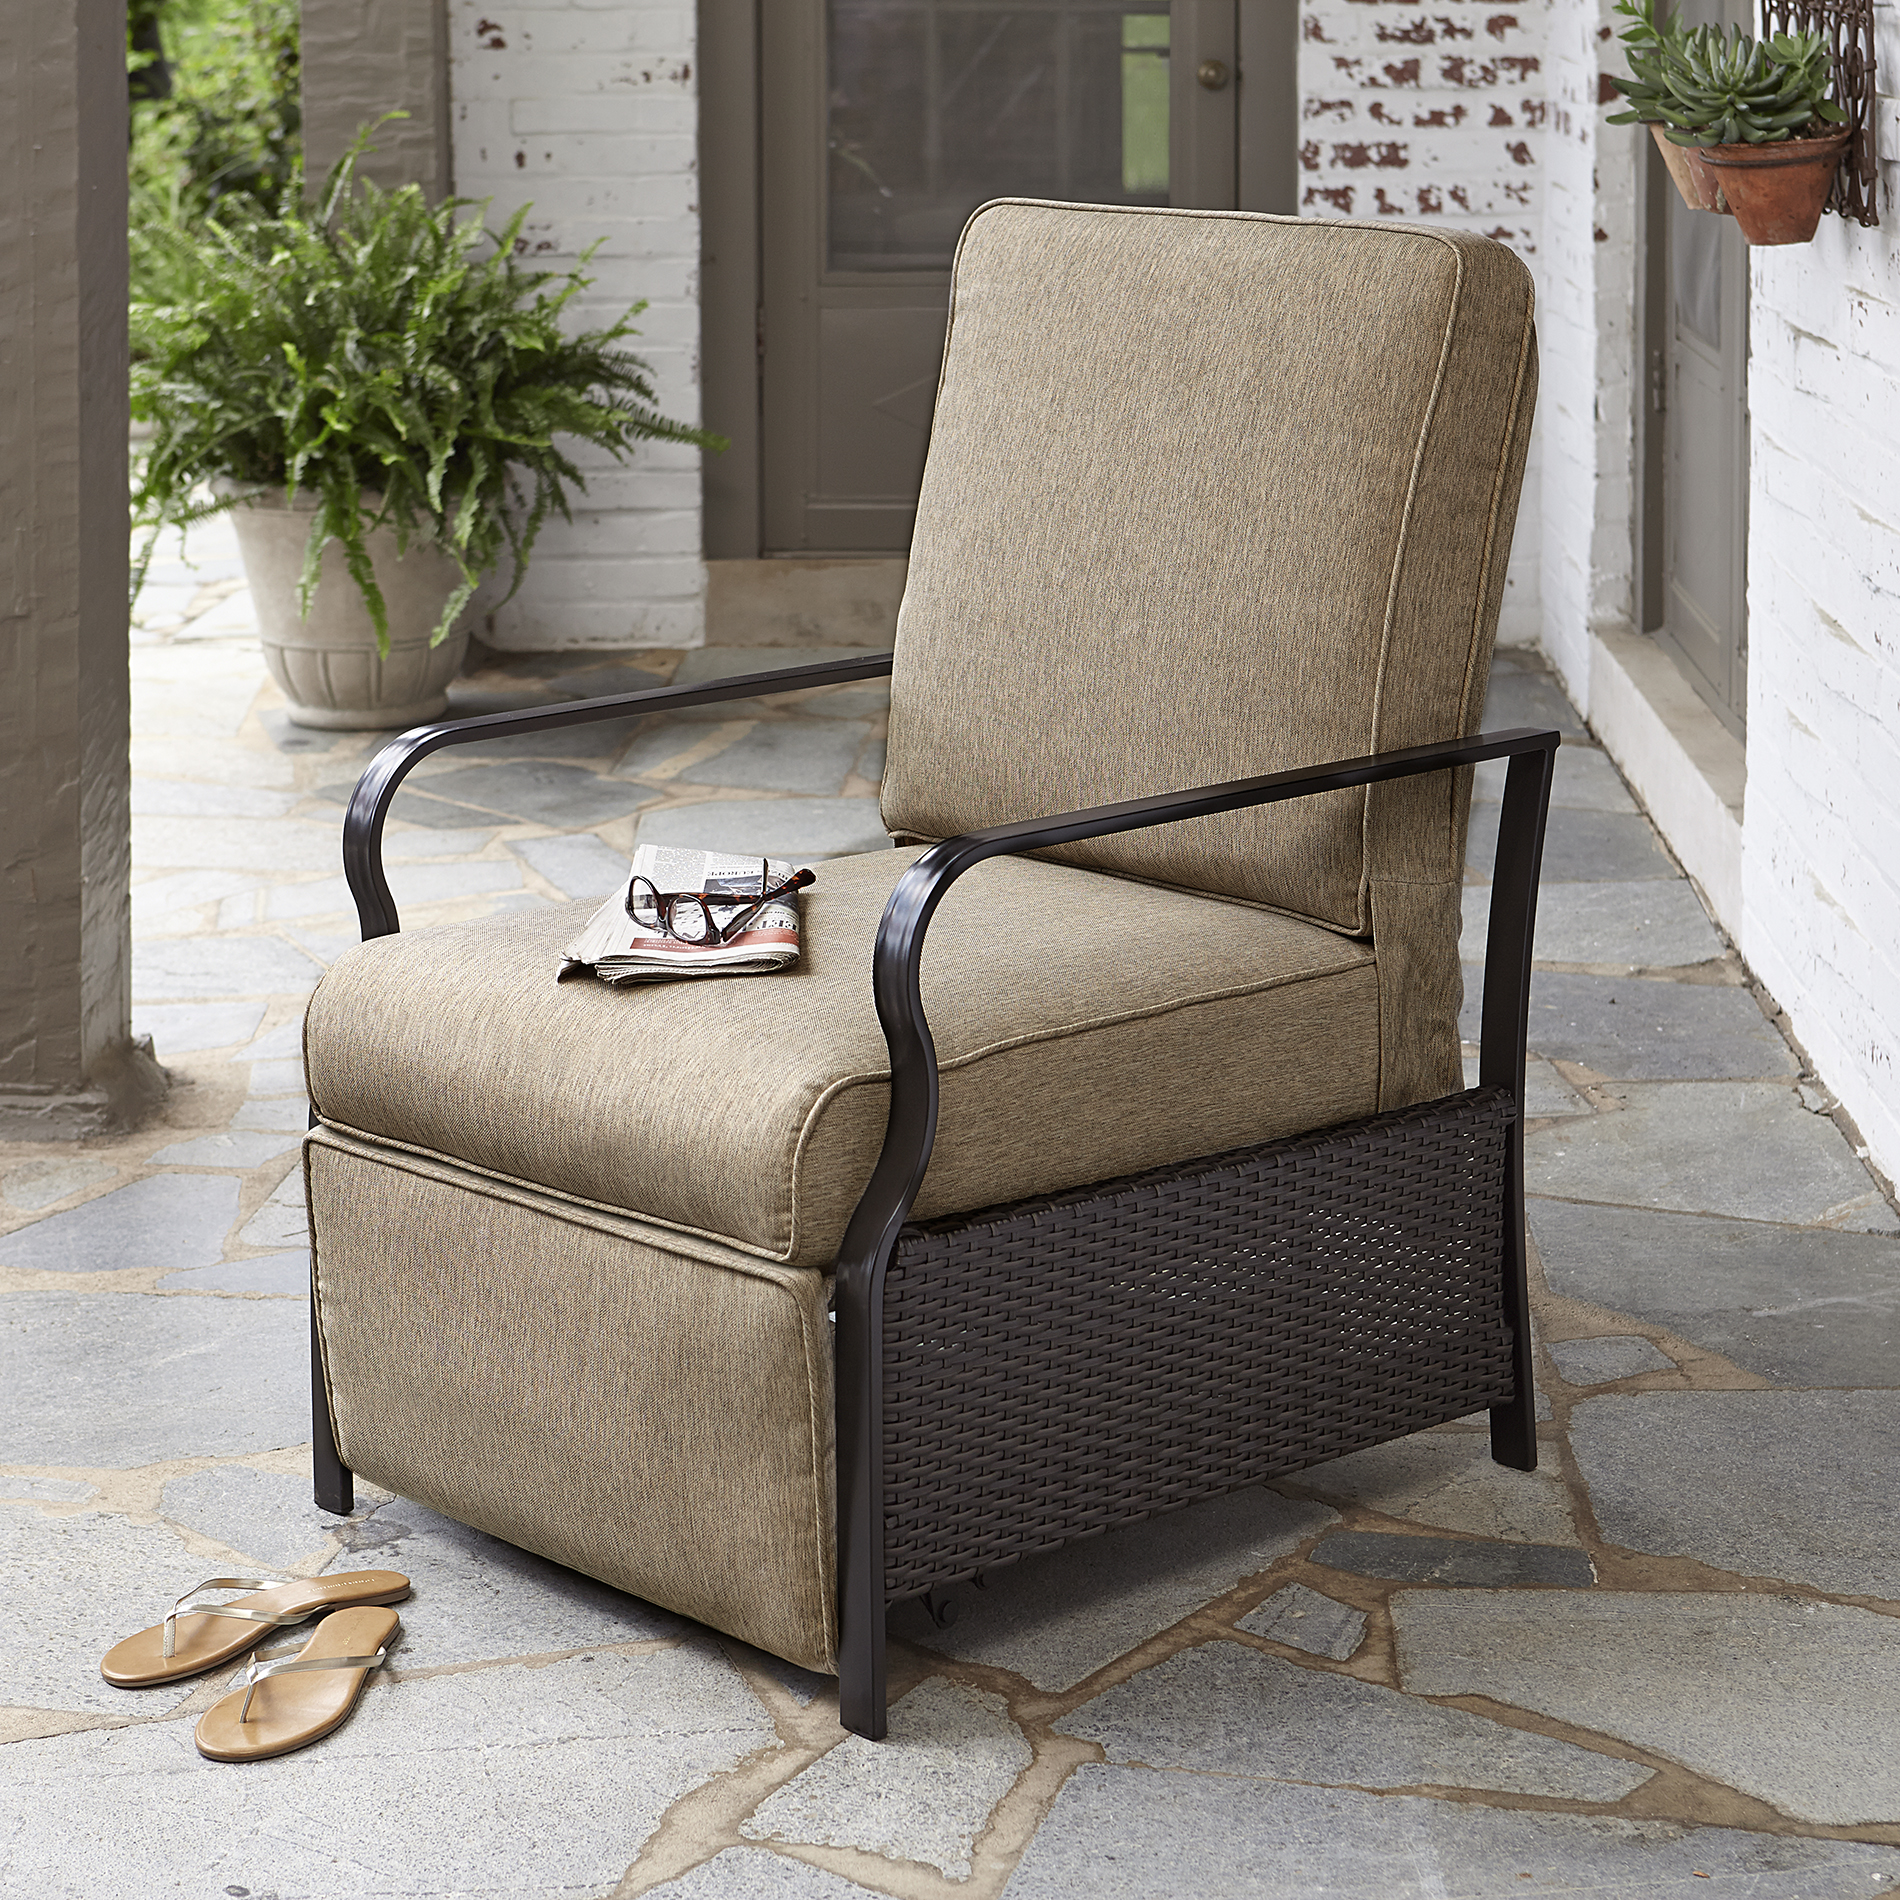 Outdoor Reclining Chair La Z Boy Outdoor Ashlynn Recliner Limited Availability